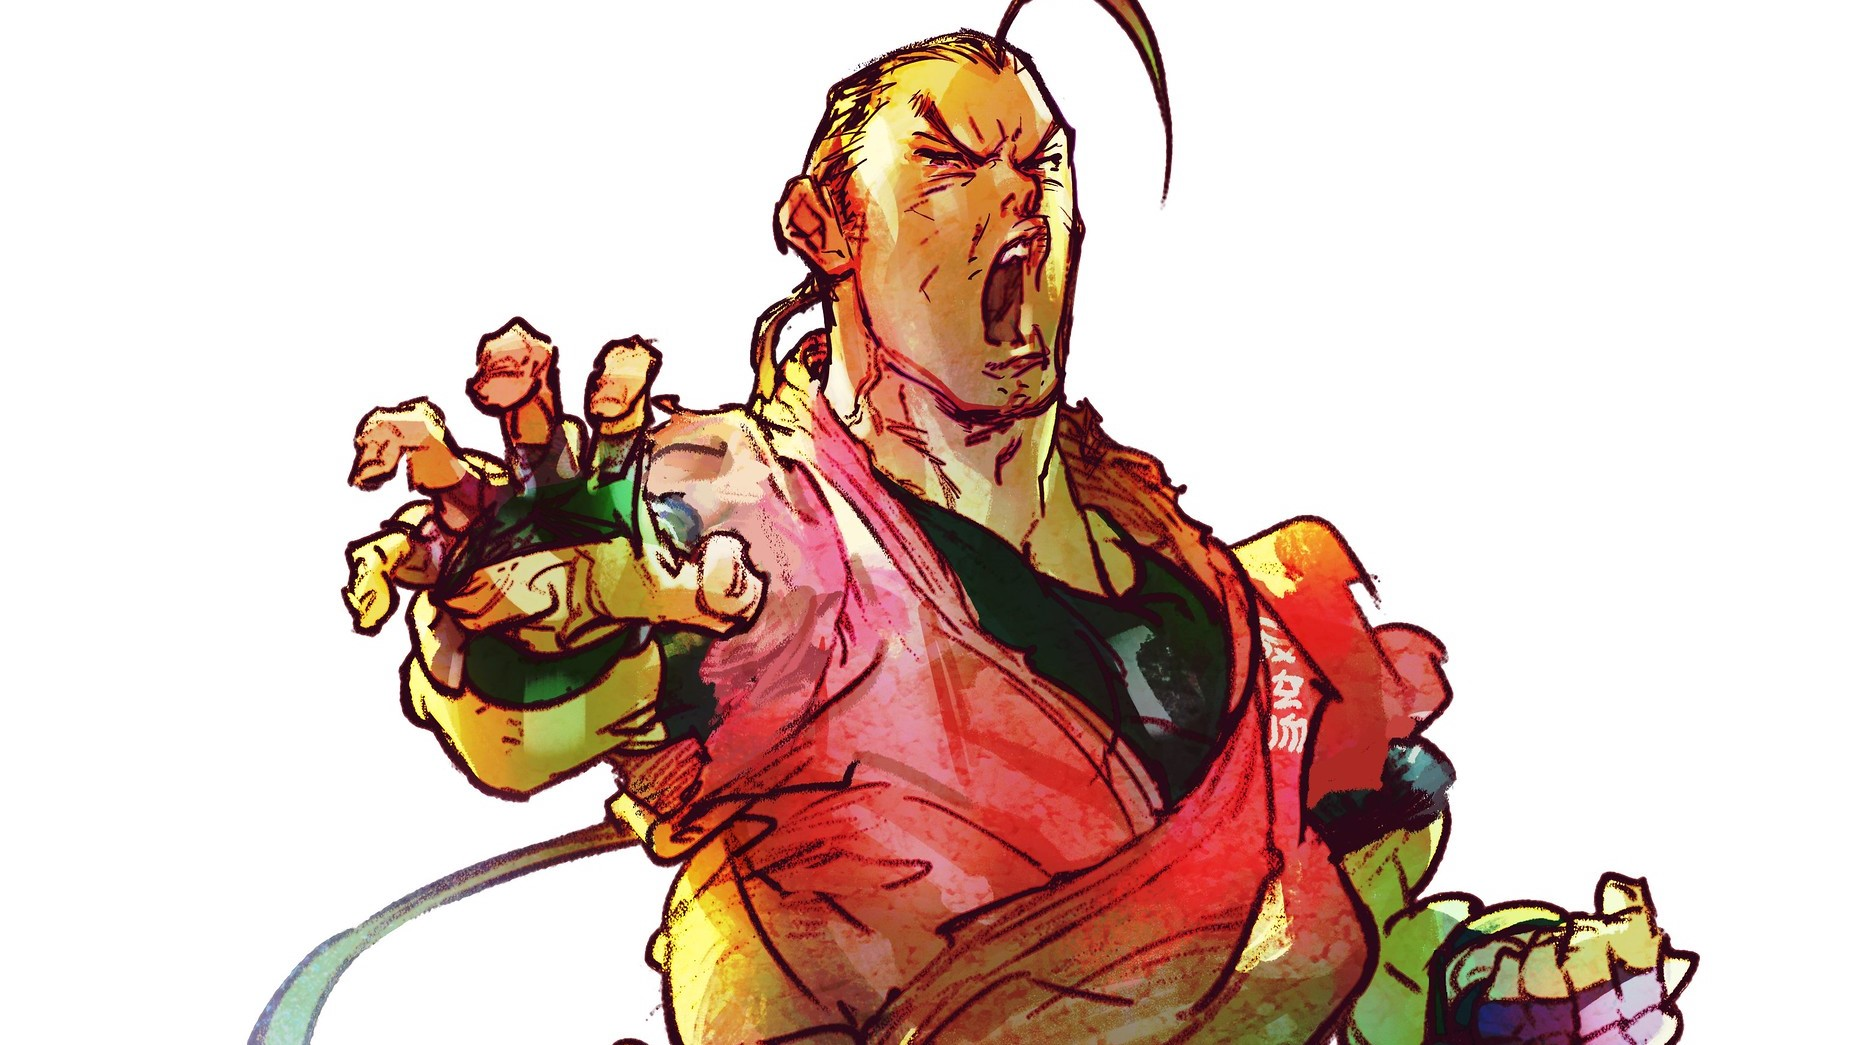 Here's your first look at Dan Hibiki in Street Fighter V thumbnail